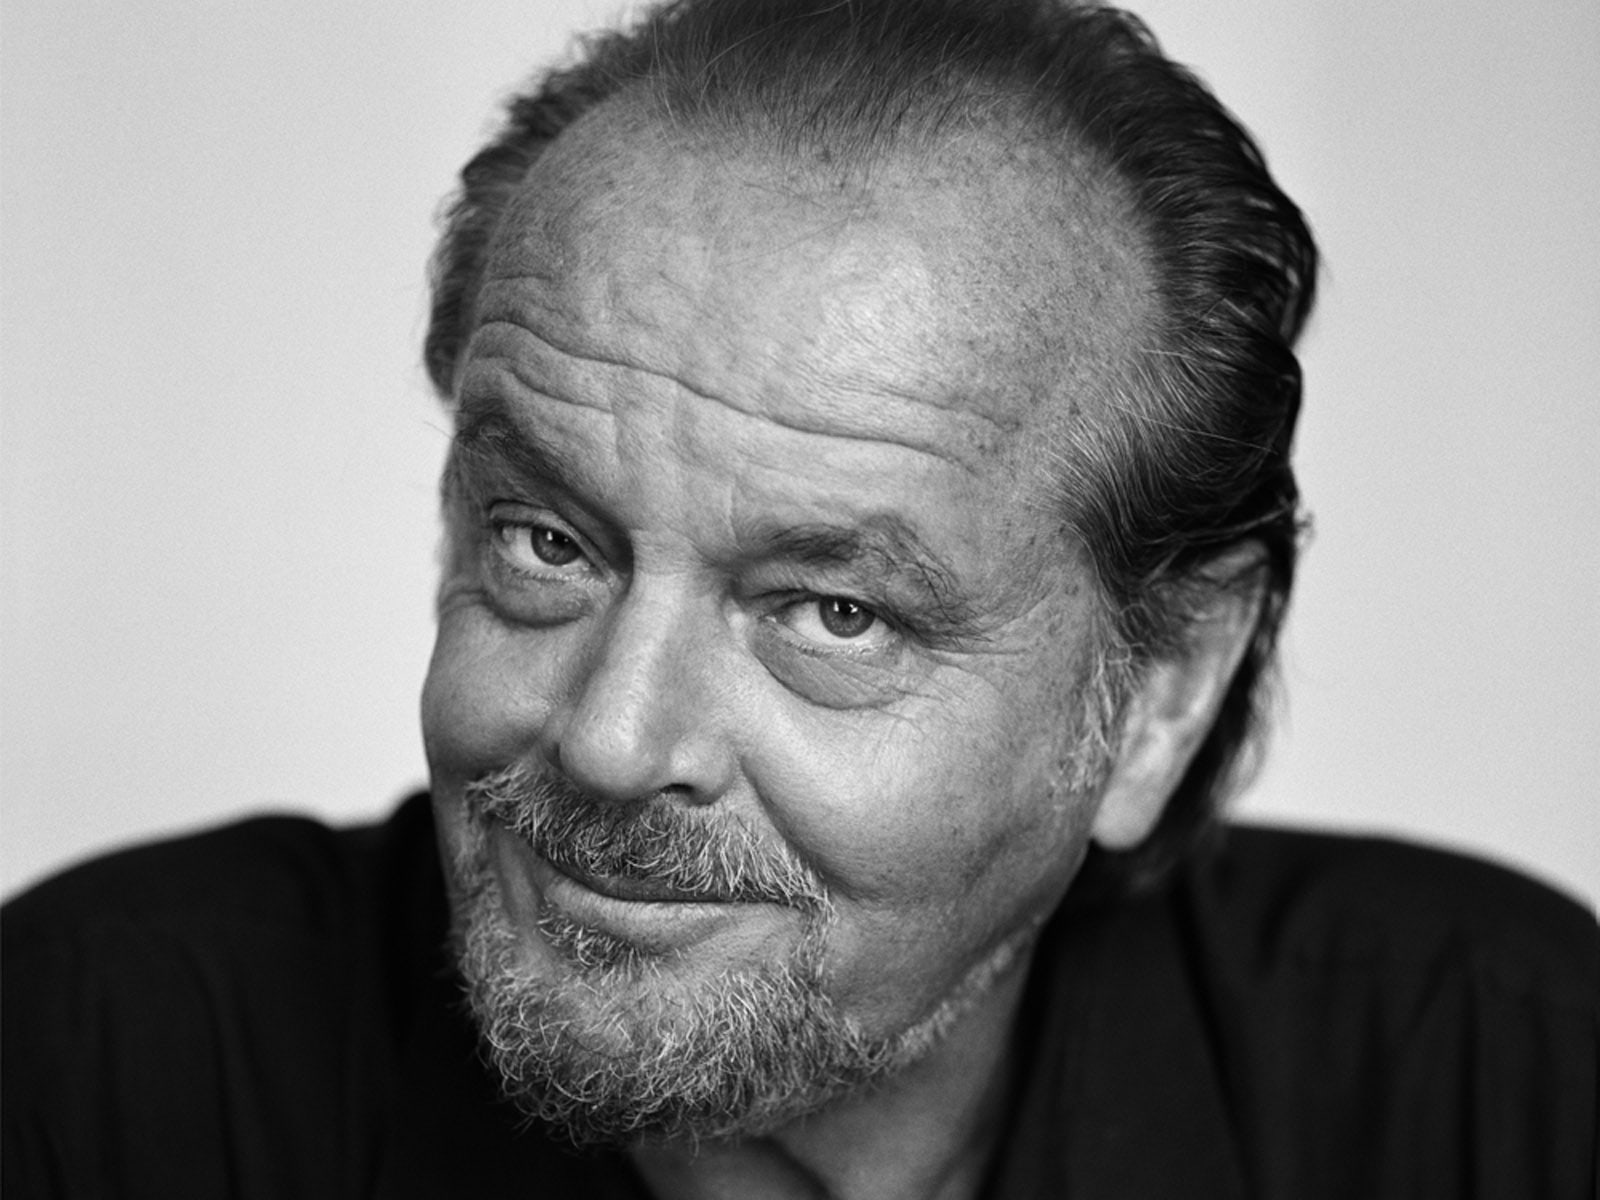 https://cinemaplanet.pt/wp-content/uploads/2018/01/Jack-Nicholson.jpg